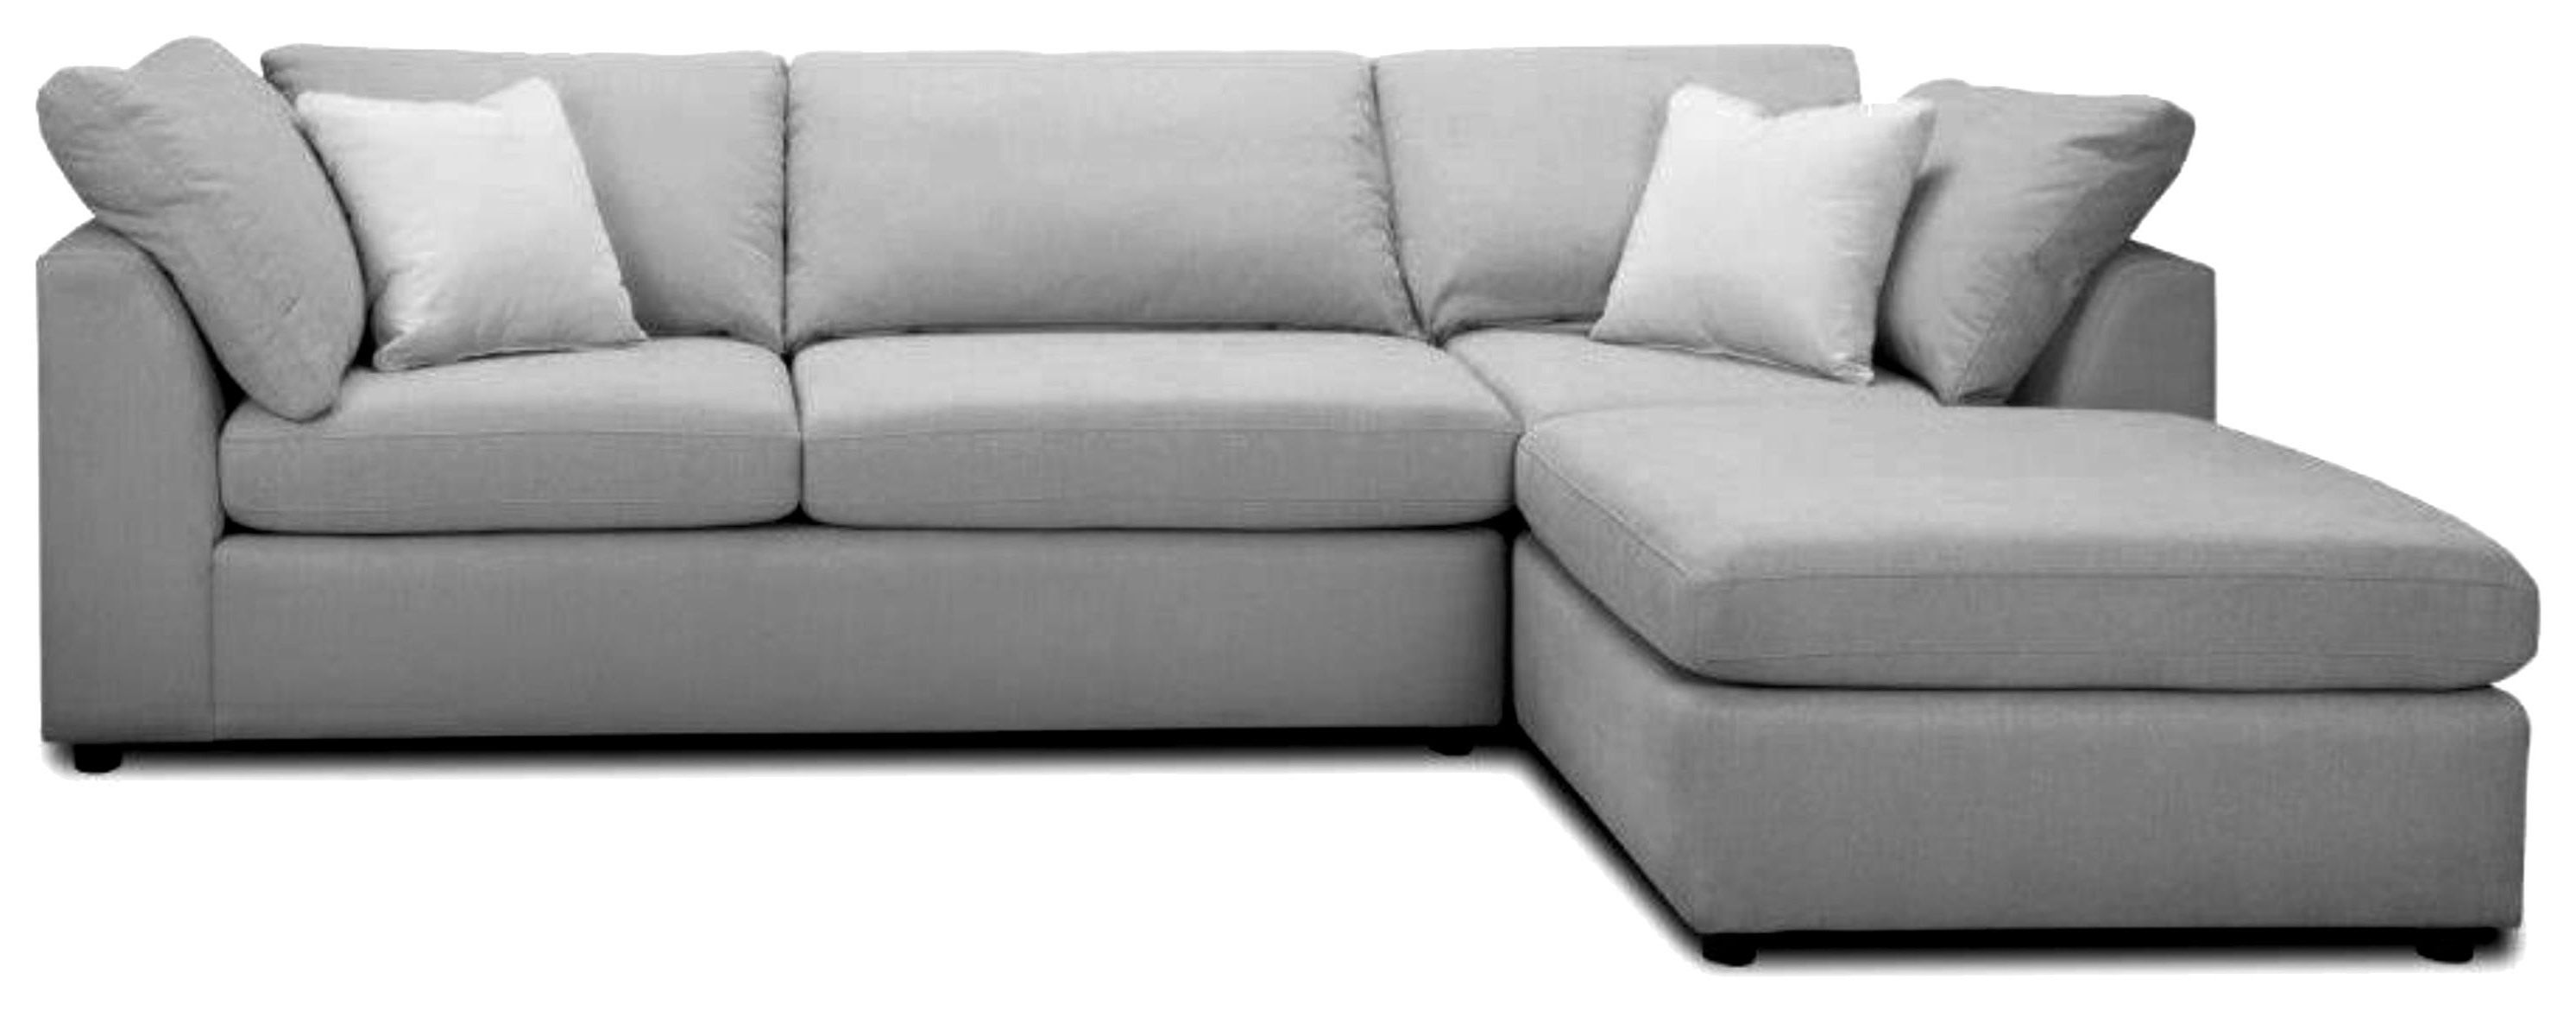 4785 Dd Mccoy Sectional by Trendline at Stoney Creek Furniture